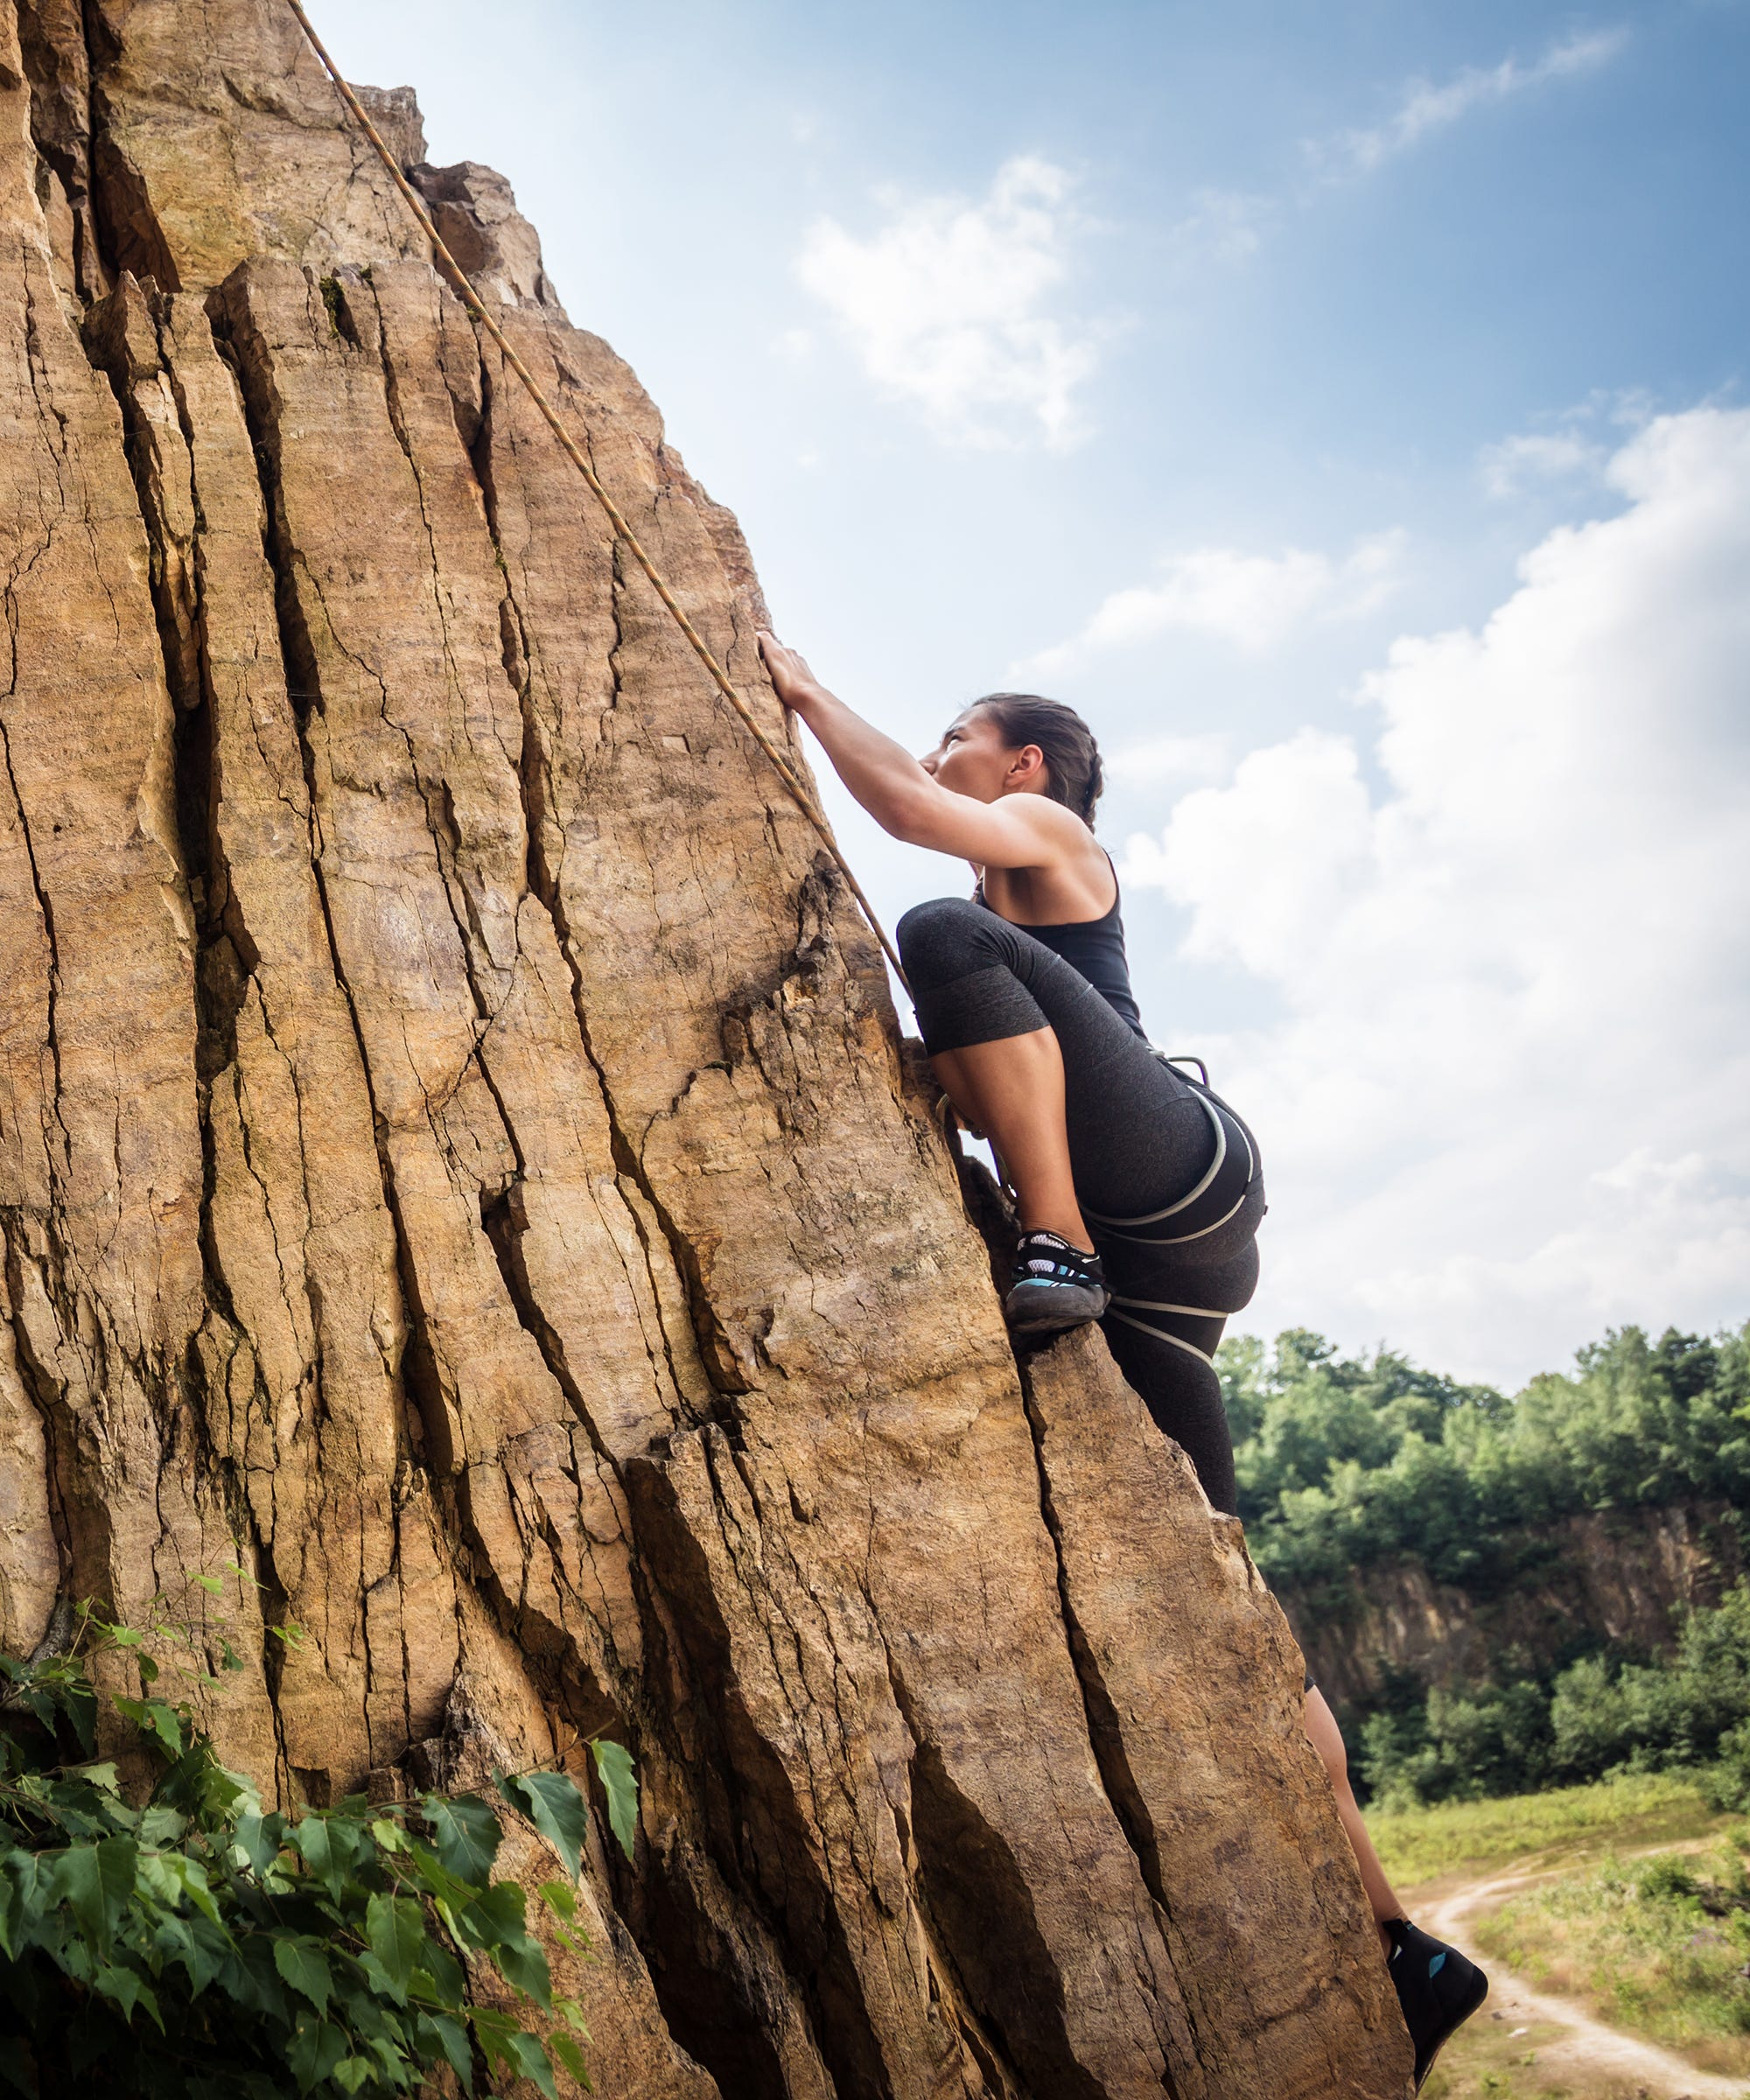 How To Start Rock Climbing Beginners Guide And Tips